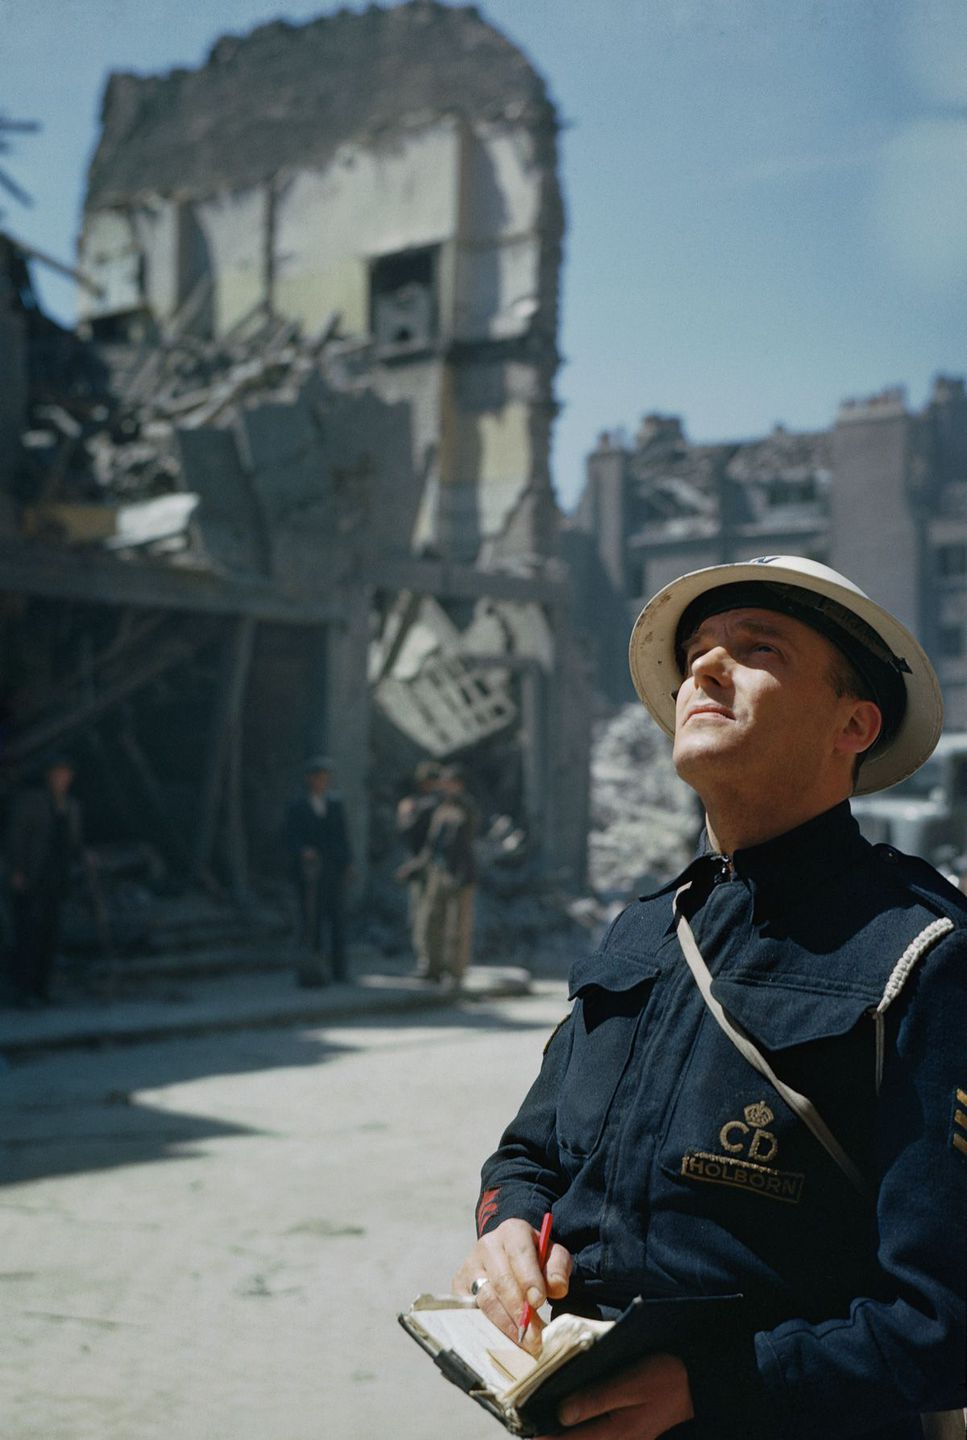 c. 1941 An Air Raid Precautions (ARP) warden inspects damaged buildings in Holborn, London.